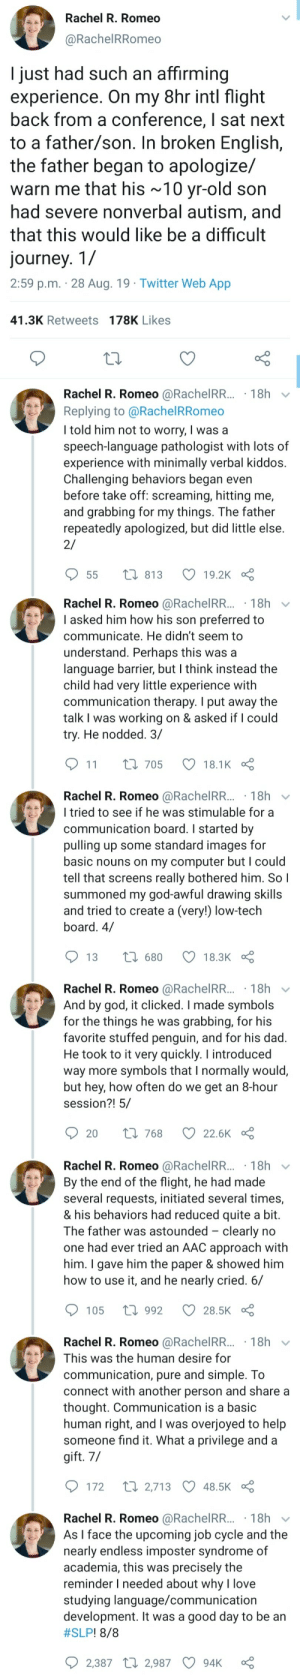 connect: Rachel R. Romeo  @RachelRRomeo  I just had such an affirming  experience. On my 8hr intl flight  back from a conference, I sat next  to a father/son. In broken English,  the father began to apologize/  warn me that his ~10 yr-old son  had severe nonverbal autism, and  that this would like be a difficult  journey. 1/  2:59 p.m. 28 Aug. 19 Twitter Web App  41.3K Retweets 178K Likes  Rachel R. Romeo @RachelRR... 18h  Replying to @Rachel RRomeo  I told him not to worry, I was a  speech-language pathologist with lots of  experience with minimally verbal kiddos.  Challenging behaviors began even  before take off: screaming, hitting me,  and grabbing for my things. The father  repeatedly apologized, but did little else  2/  t 813  19.2K  55   Rachel R. Romeo @RachelRR...18h  I asked him how his son preferred to  communicate. He didn't seem to  understand. Perhaps this was a  language barrier, but I think instead the  child had very little experience with  communication therapy. I put away the  talk I was working on & asked if I could  try. He nodded. 3/  11  L 705  18.1K  Rachel R. Romeo @RachelRR... 18h  I tried to see if he was stimulable for a  communication board. I started by  pulling up some standard images for  basic nouns on my computer but I could  tell that screens really bothered him. So I  summoned my god-awful drawing skills  and tried to create a (very!) low-tech  board. 4/  1680  13  18.3K  Rachel R. Romeo @RachelRR... 18h  And by god, it clicked. I made symbols  for the things he was  favorite stuffed penguin, and for his dad.  He took to it very quickly. I introduced  way more symbols that I normally would,  but hey, how often do we get an 8-hour  session?! 5/  grabbing, for his  Li 768  20  22.6K   Rachel R. Romeo @RachelRR... 18h  By the end of the flight, he had made  several requests, initiated several times,  & his behaviors had reduced quite a bit.  The father was astounded clearly no  one had ever tried an AAC approach with  him. I gave him the paper & showed him  how to use it, and he nearly cried. 6/  1992  105  28.5K  Rachel R. Romeo @RachelRR... 18h  This was the human desire for  communication, pure and simple. To  connect with another person and share a  thought. Communication is a basic  human right, and I was overjoyed to help  someone find it. What a privilege and a  gift. 7/  t 2,713 48.5K  172  Rachel R. Romeo @RachelRR... 18h  As I face the upcoming job cycle and the  nearly endless imposter syndrome of  academia, this was precisely the  reminder I needed about why l love  studying language/communication  development. It was a good day to be an  #SLP ! 8/8  2,387 2,987  94K